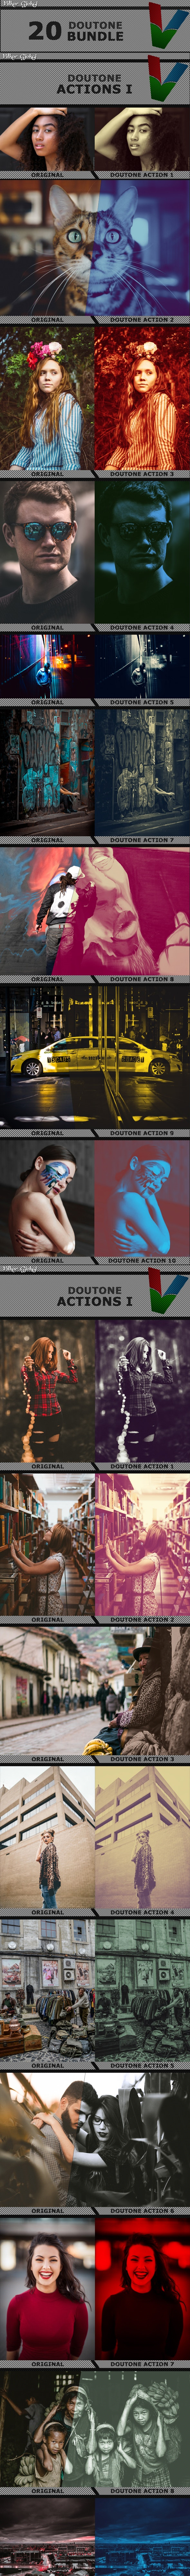 20 Doutone Actions Bundle - Photo Effects Actions